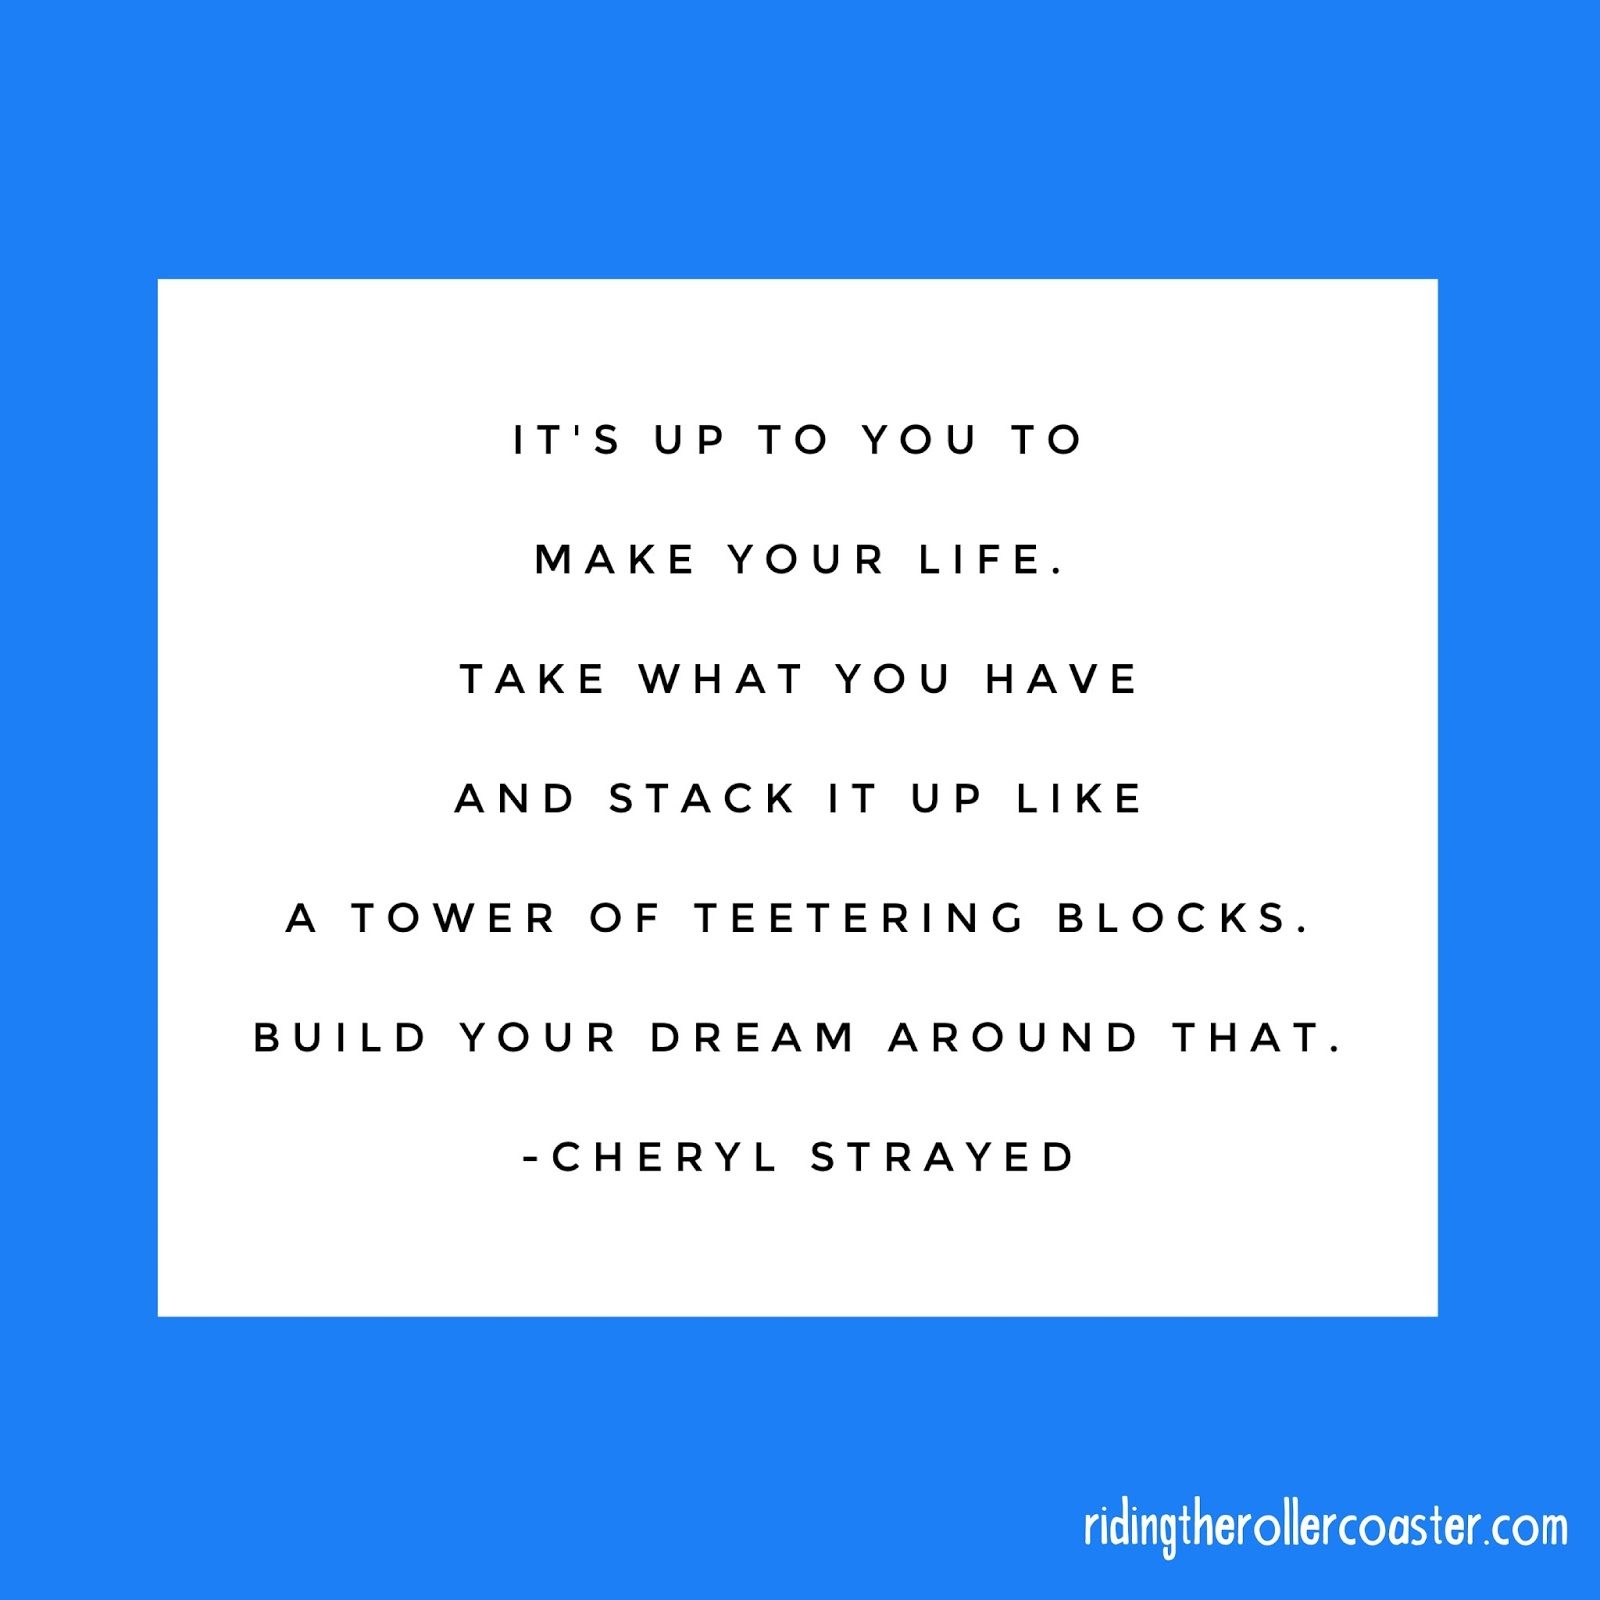 Life After Divorce Quotes Riding The Roller Coaster 15 Inspiring Cheryl Strayed Quotes